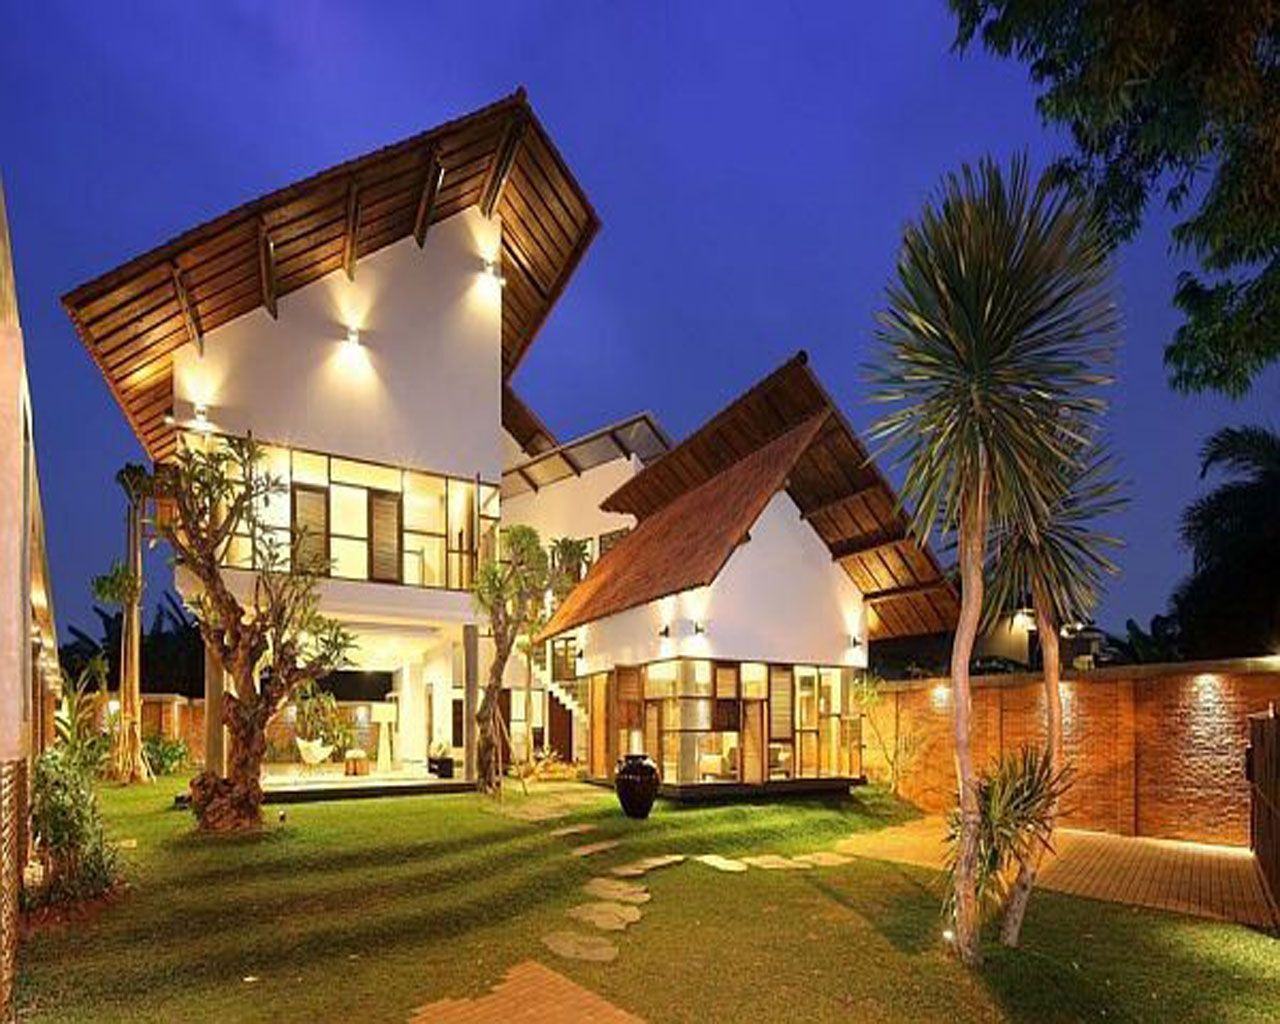 Fascinating tropical roof design representing elegant lighting system and brown wooden gable end roof rongent